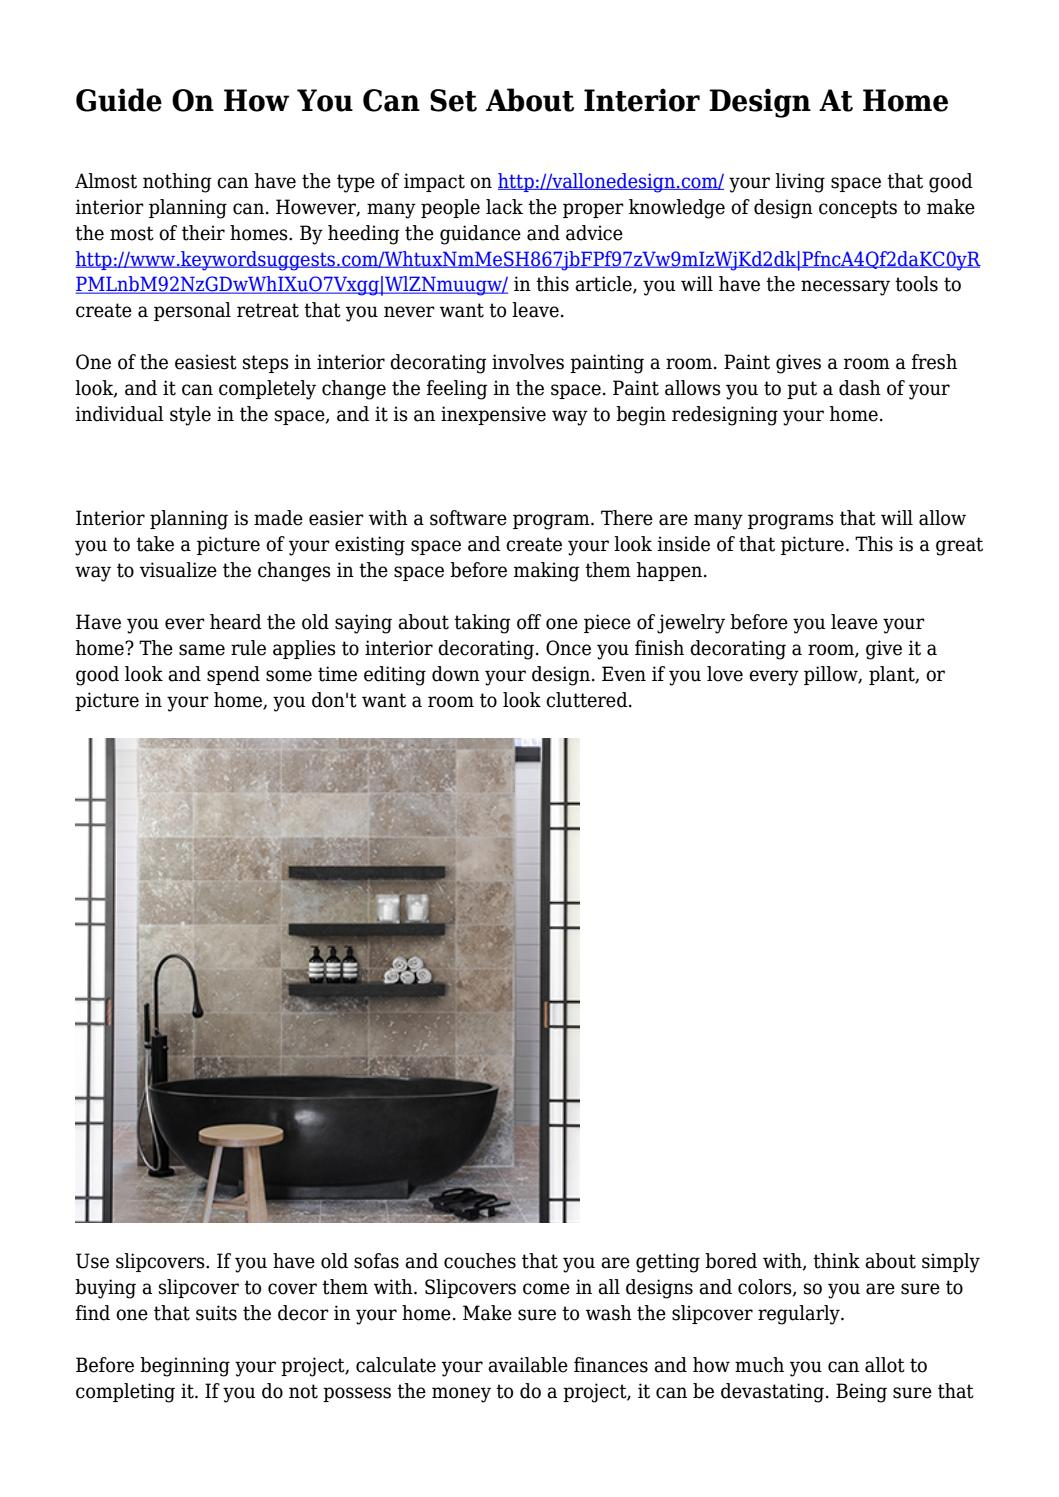 Guide On How You Can Set About Interior Design At Home... by c&belltojxsyiojbmarryadrian - issuu